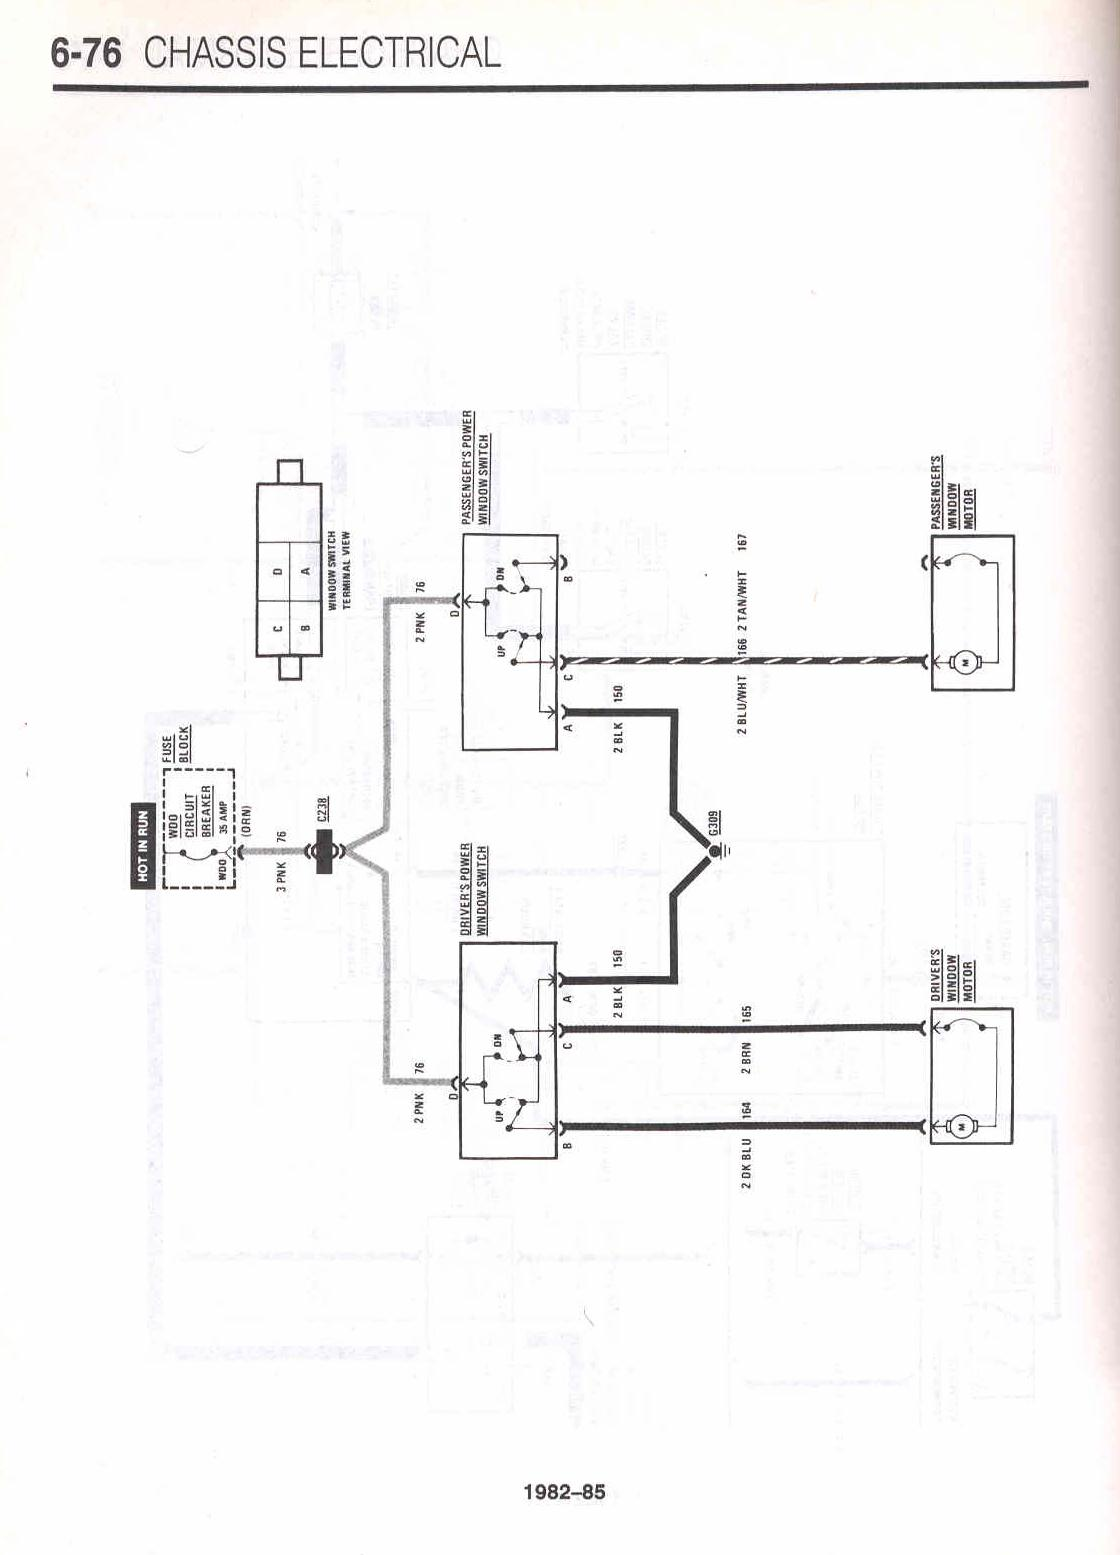 1974 Camaro Wiring Diagram